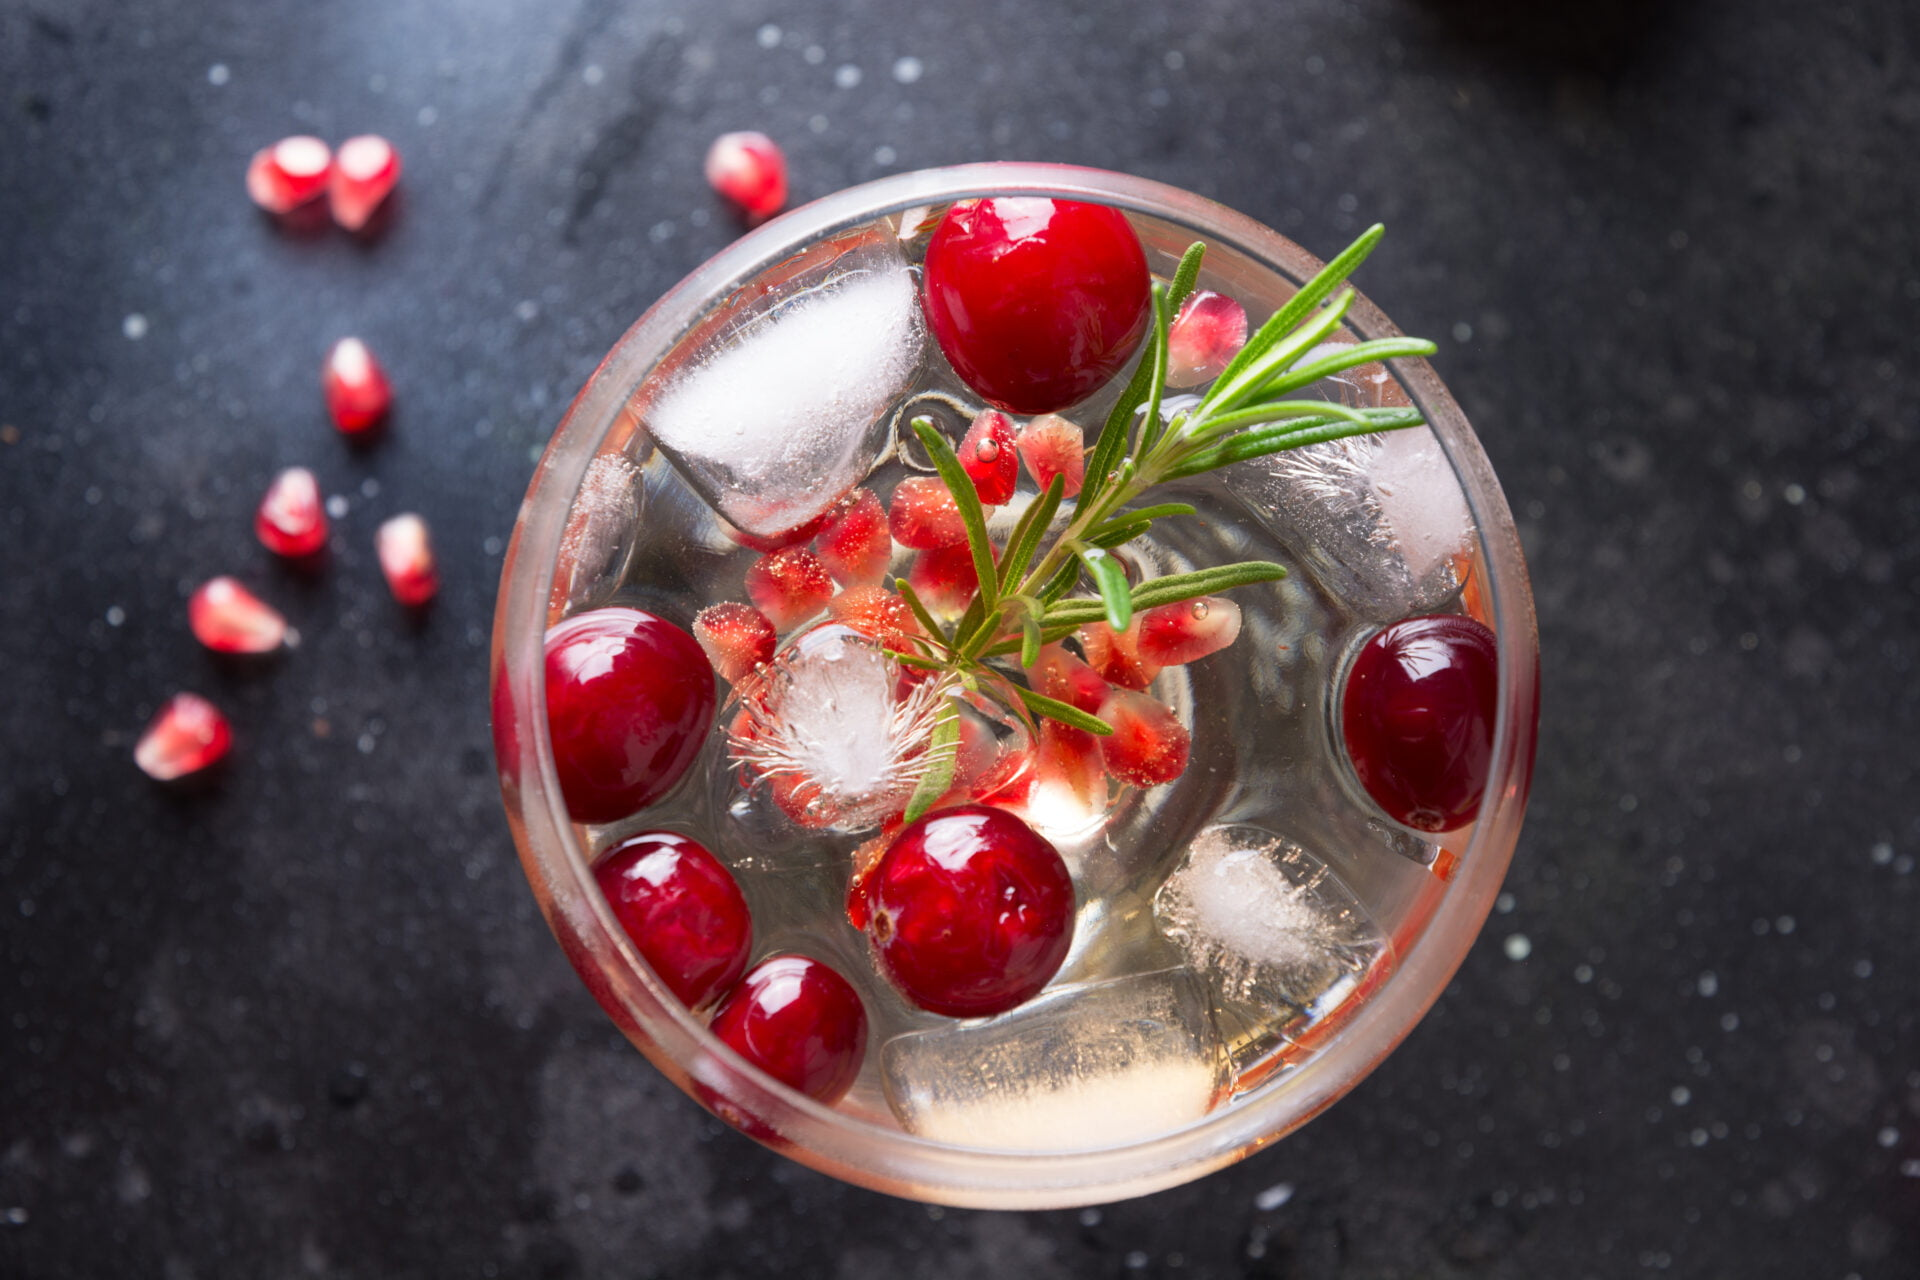 Pomegranate Christmas cocktail with rosemary, club soda on black table